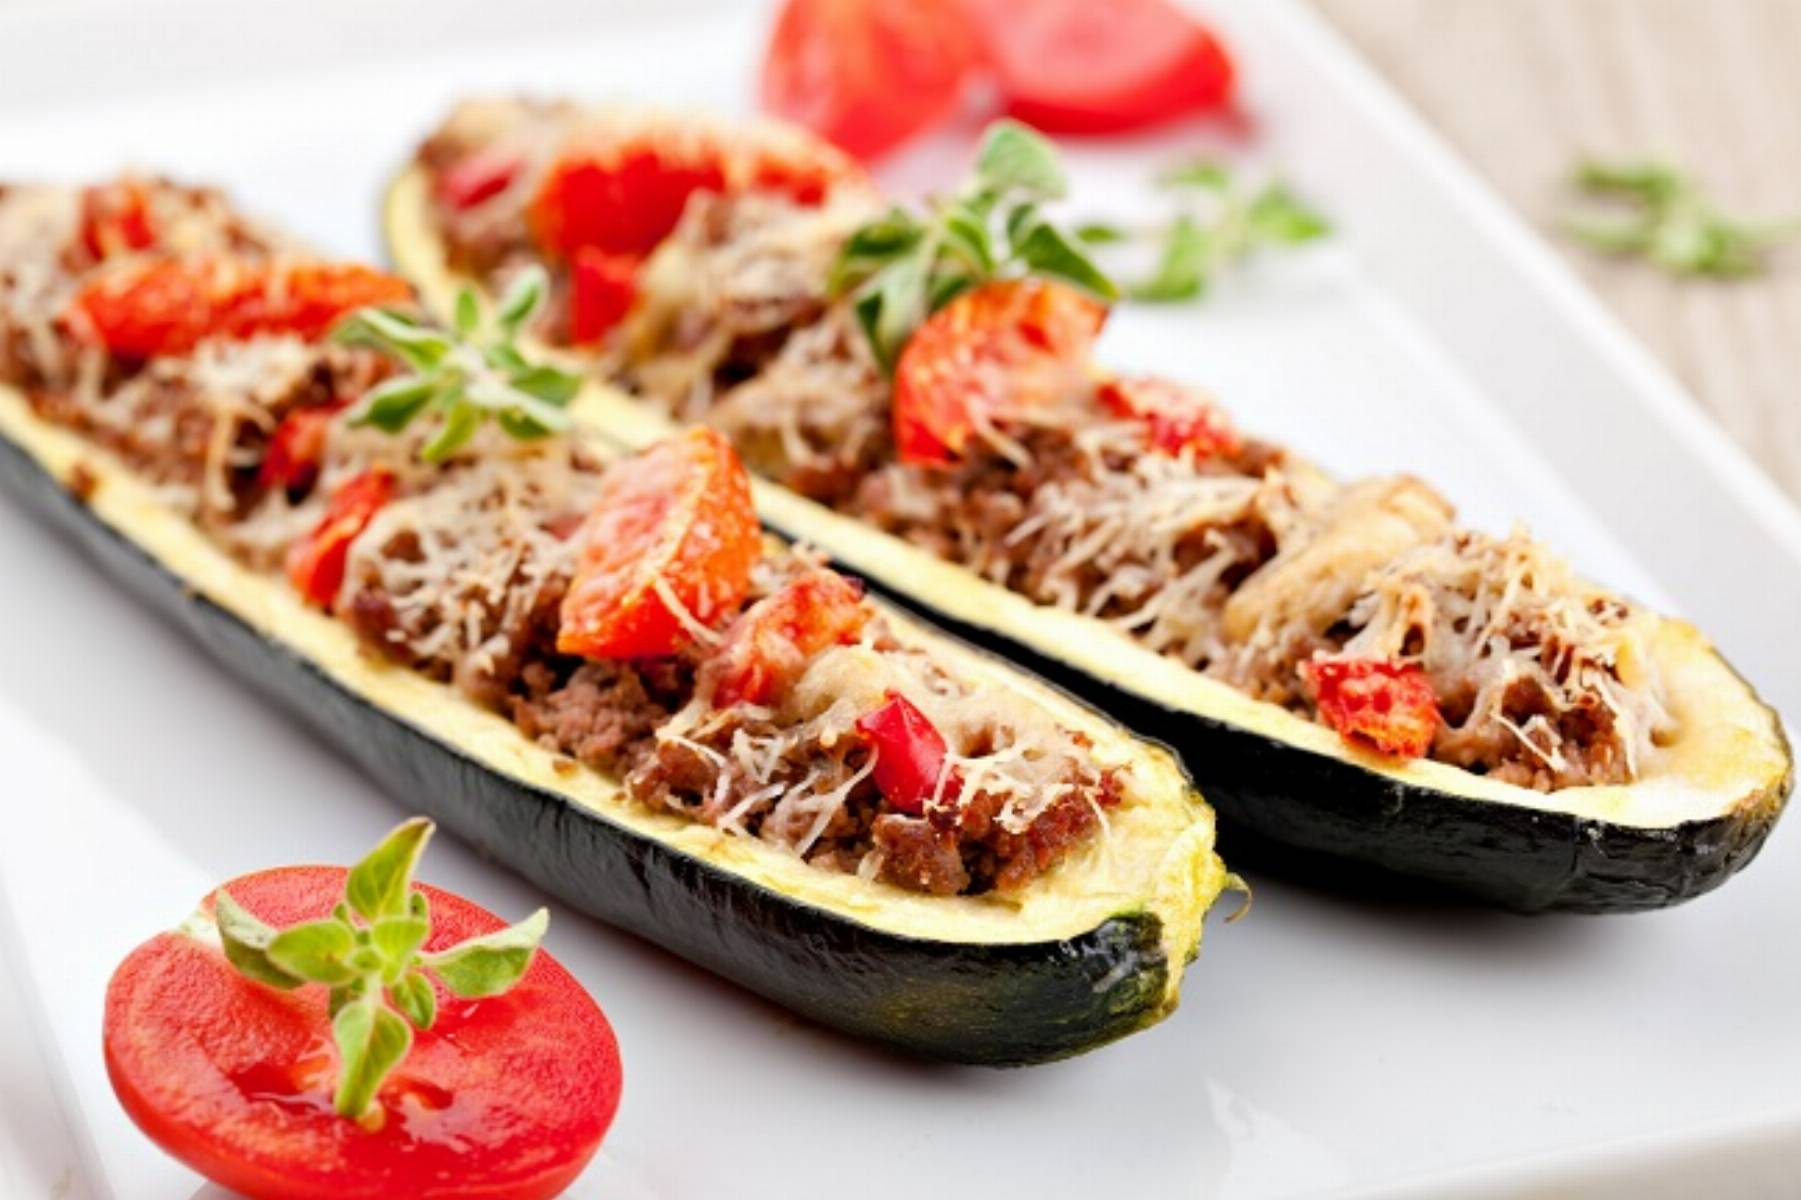 Zucchini halves stuffed with minced meat